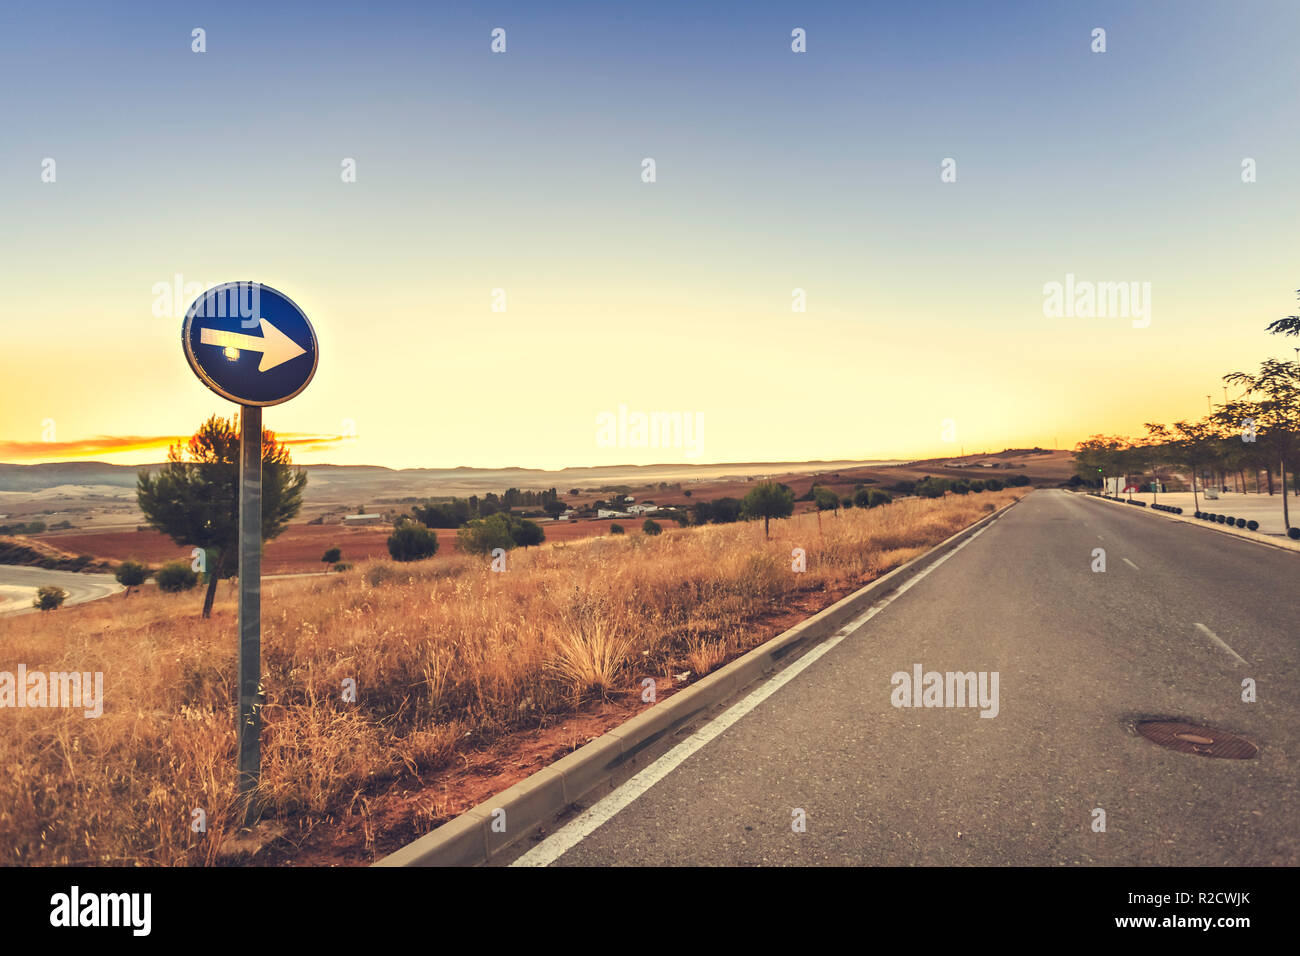 Mandatory direction traffic sign to the right with highway at sunrise and blue sky background - Stock Image